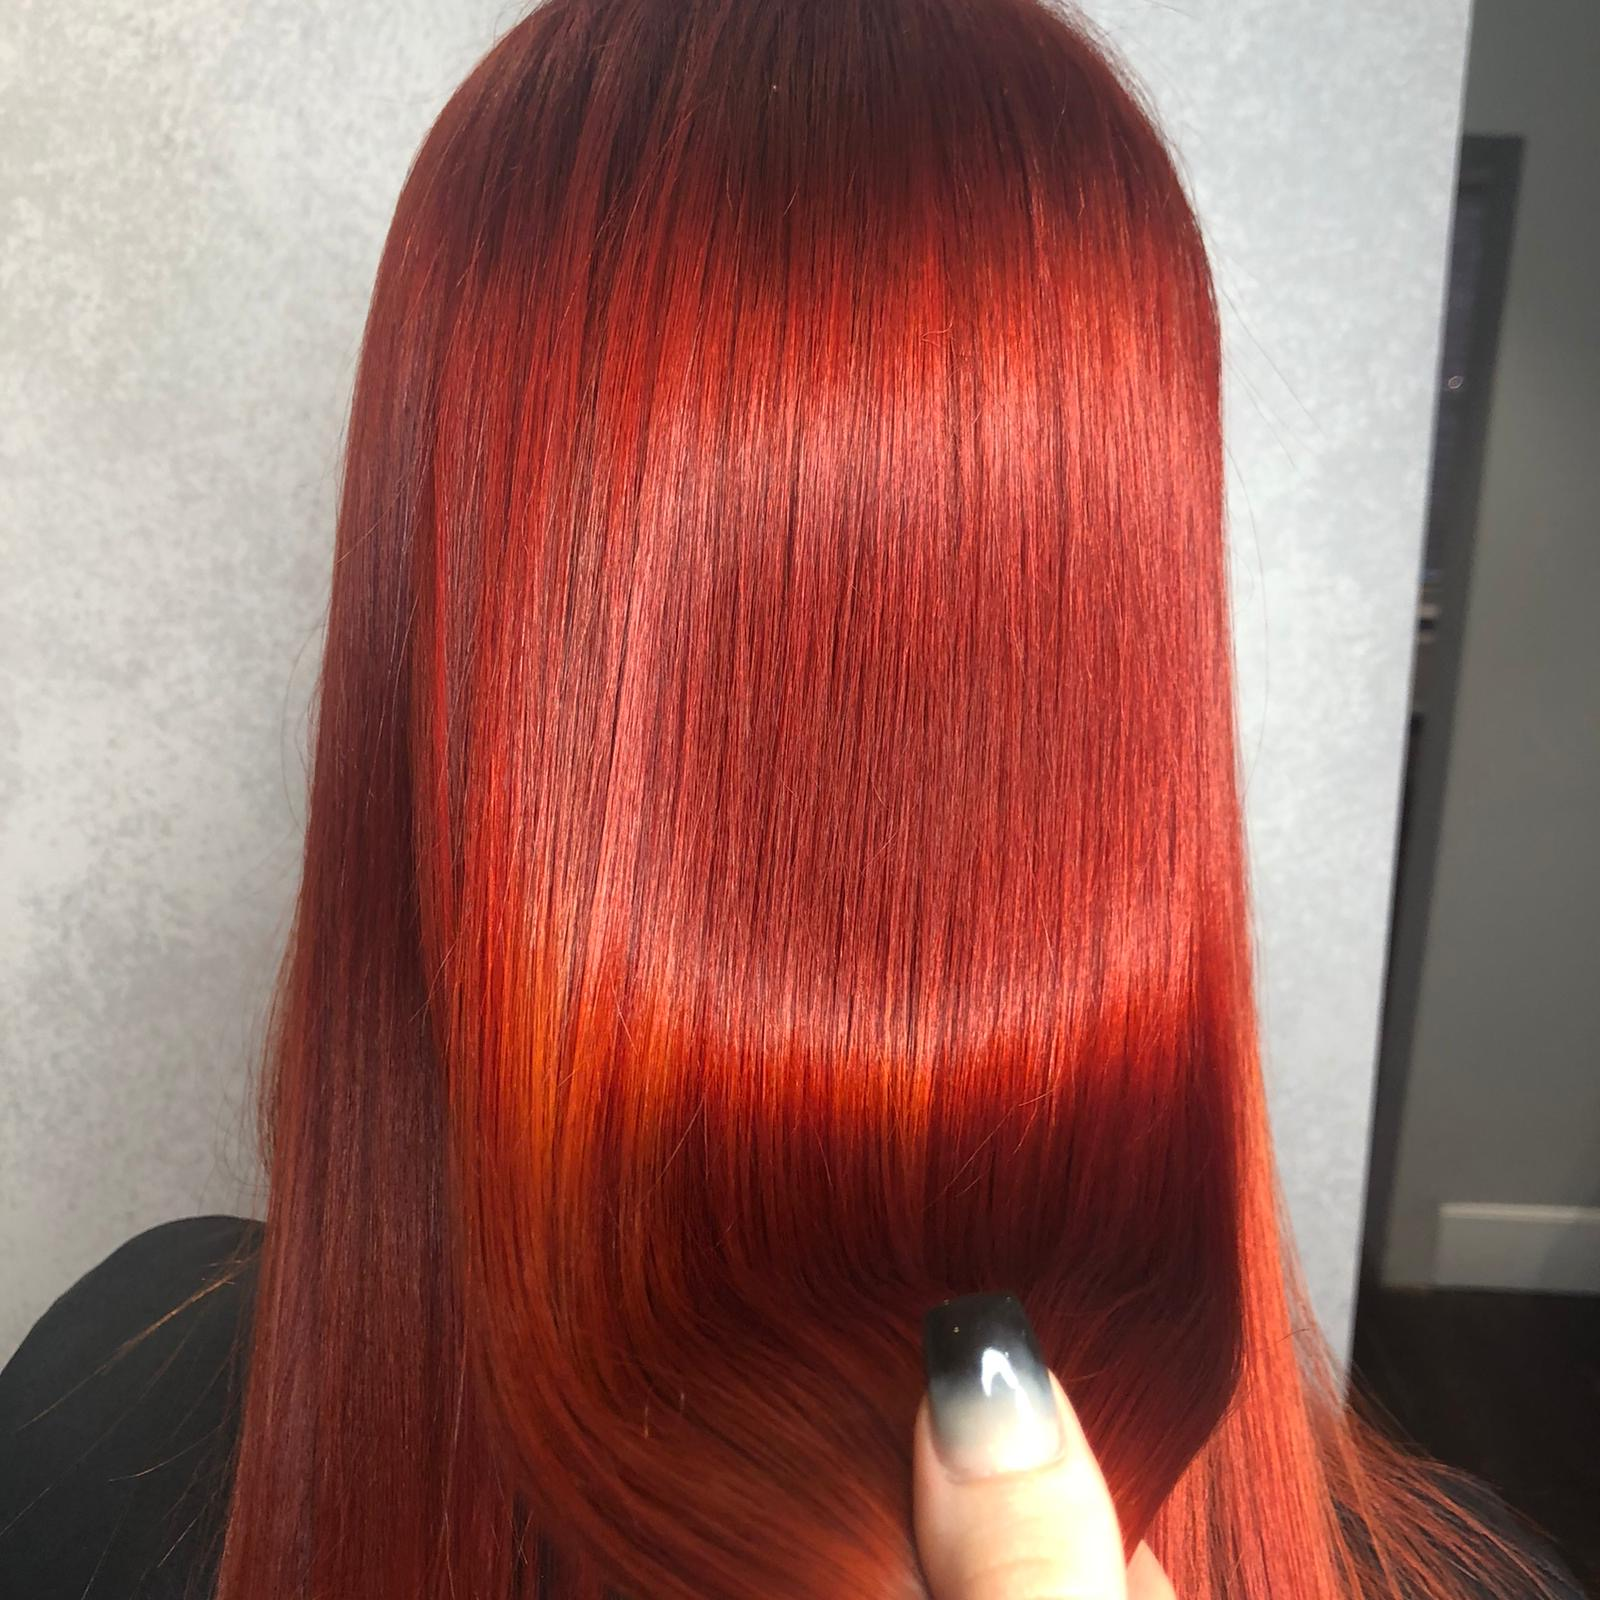 Red Hair for Valentines - large image